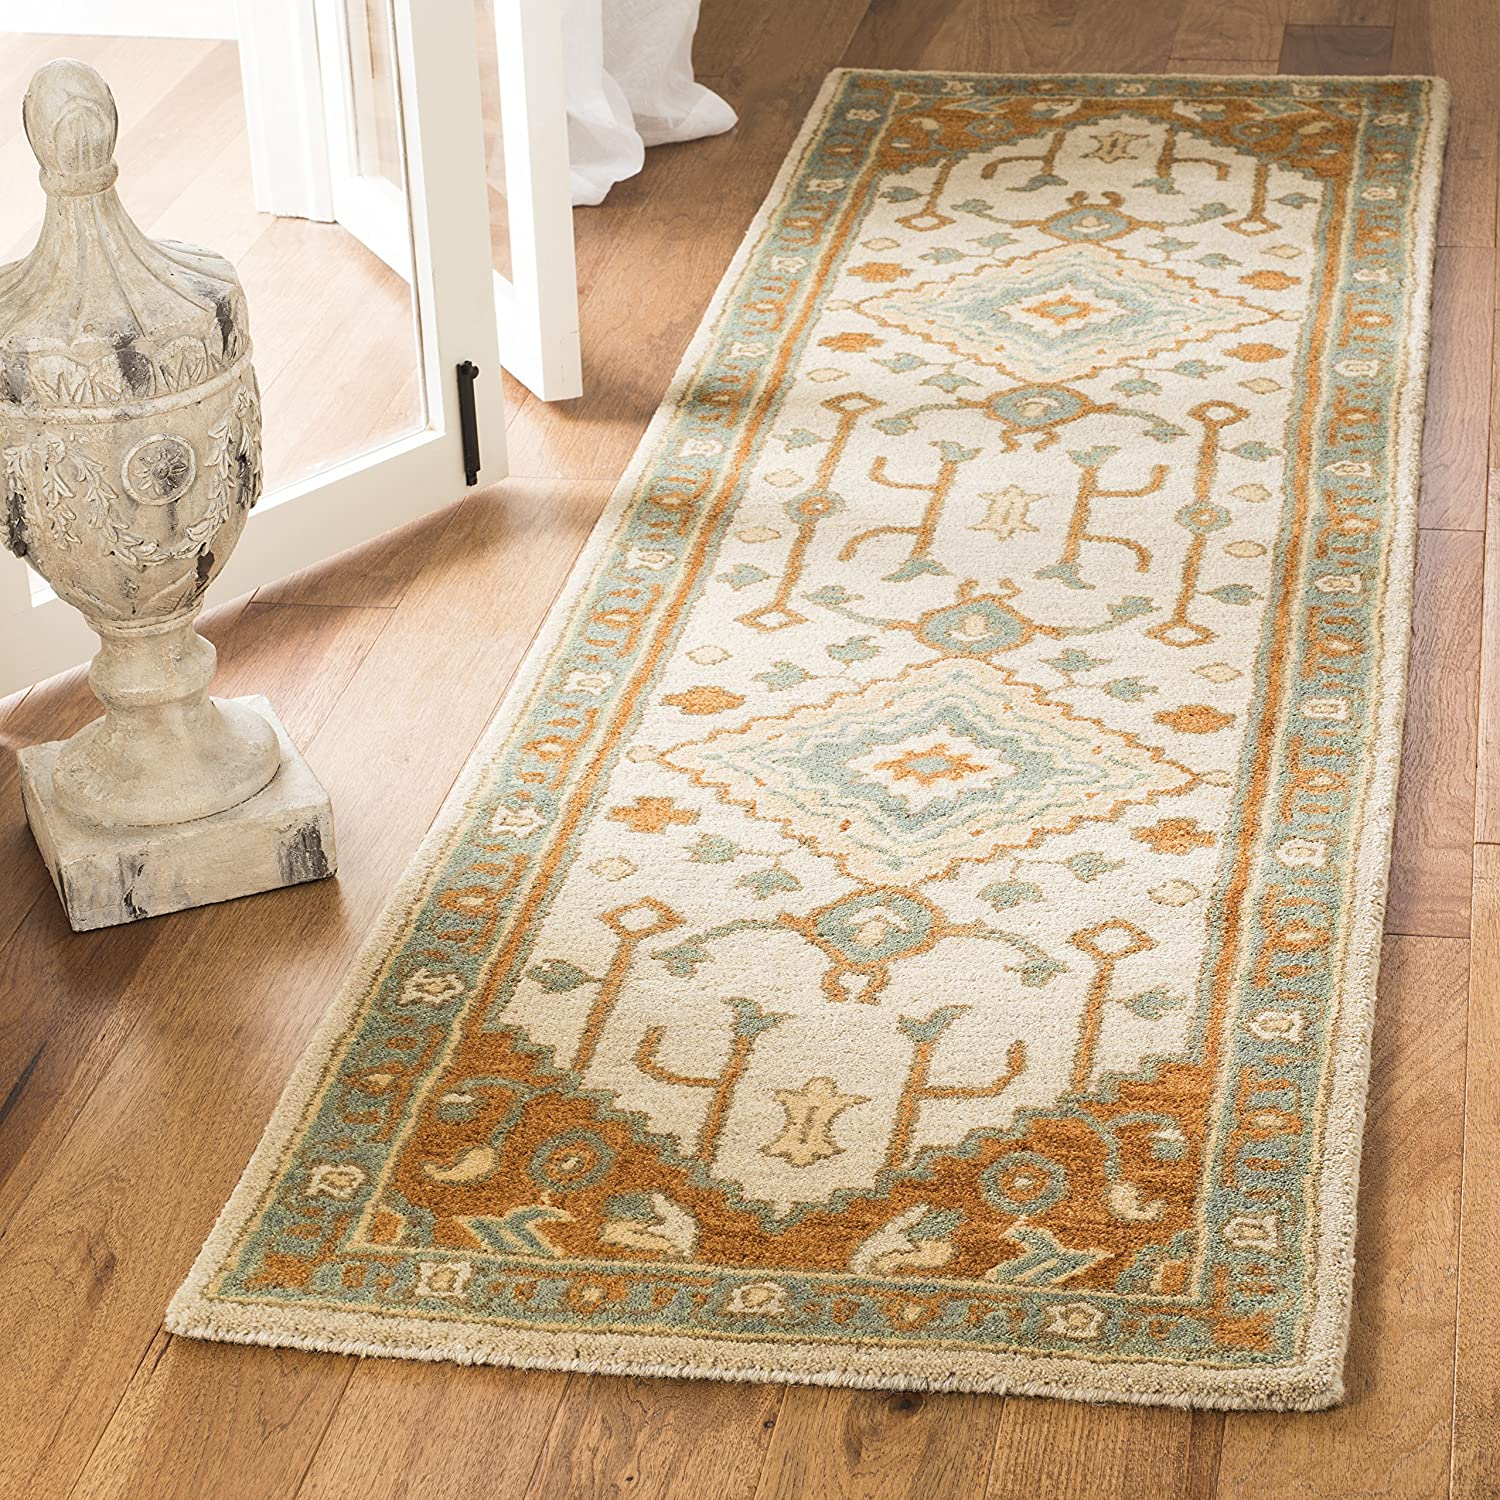 Safavieh Heritage Collection HG406A Light bluee and Rust Runner (2'3  x 10')